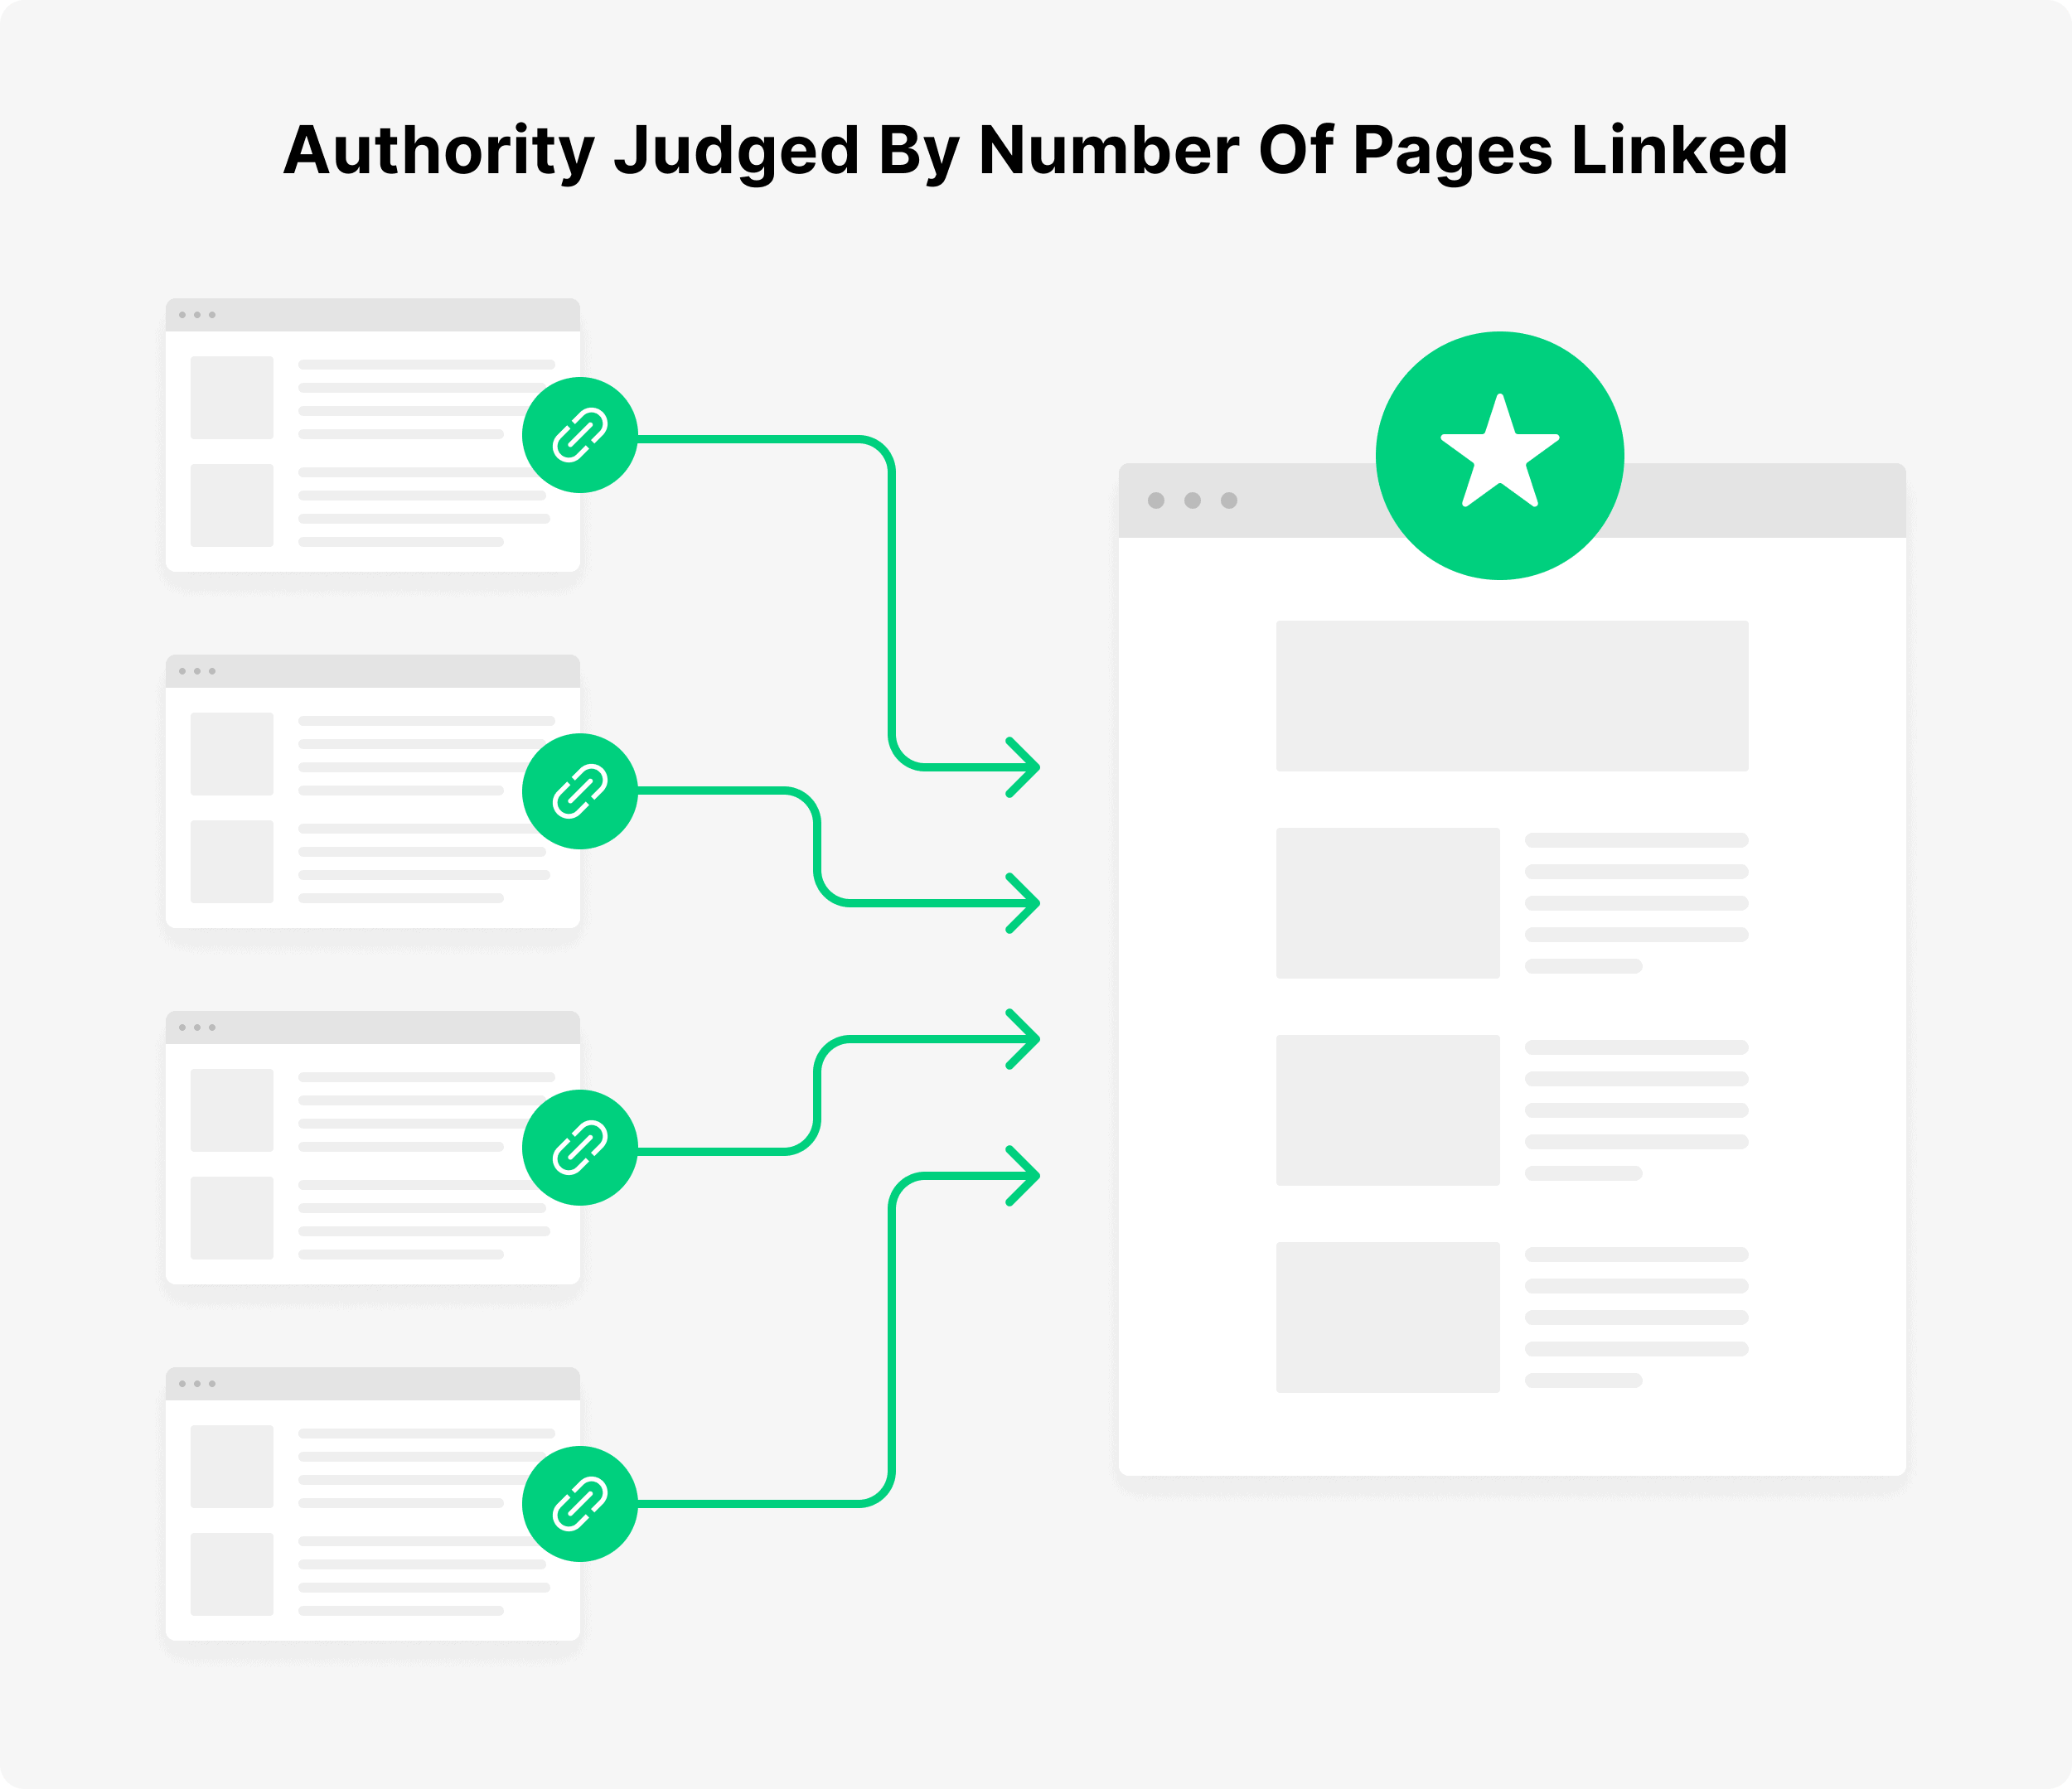 Authority judged by number of pages linked